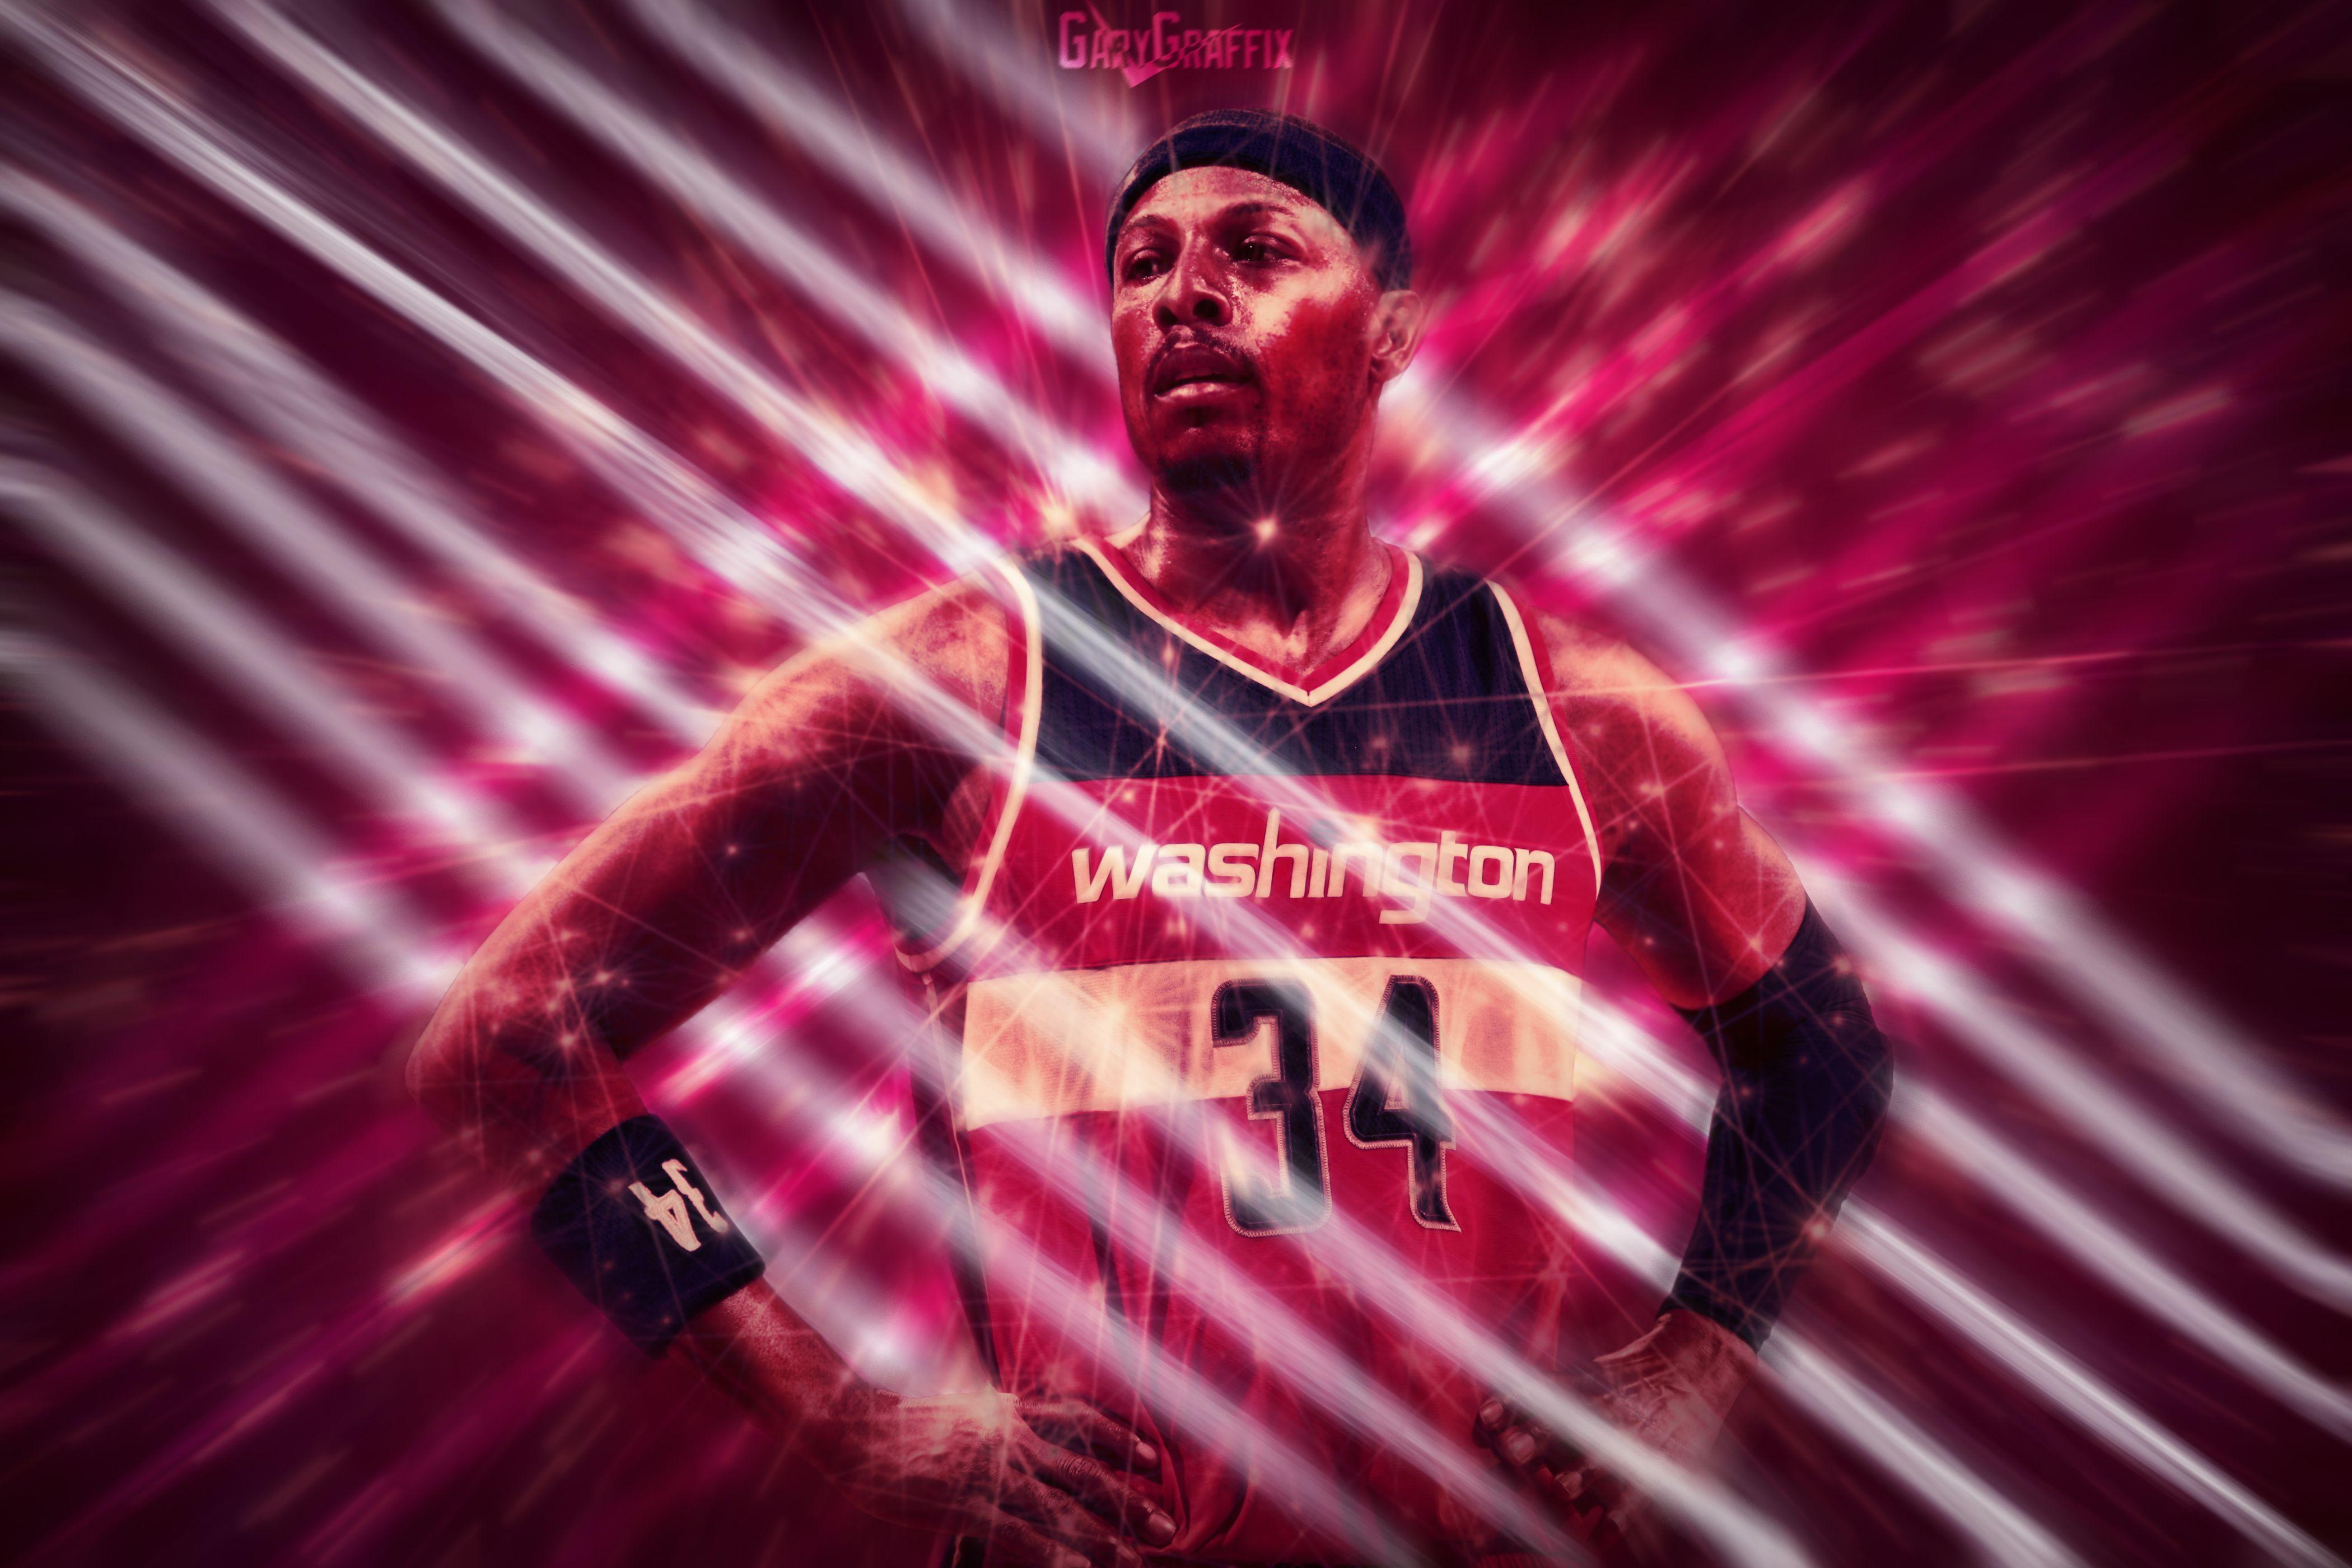 Basketball Wallpapers5 - GaryGraffix